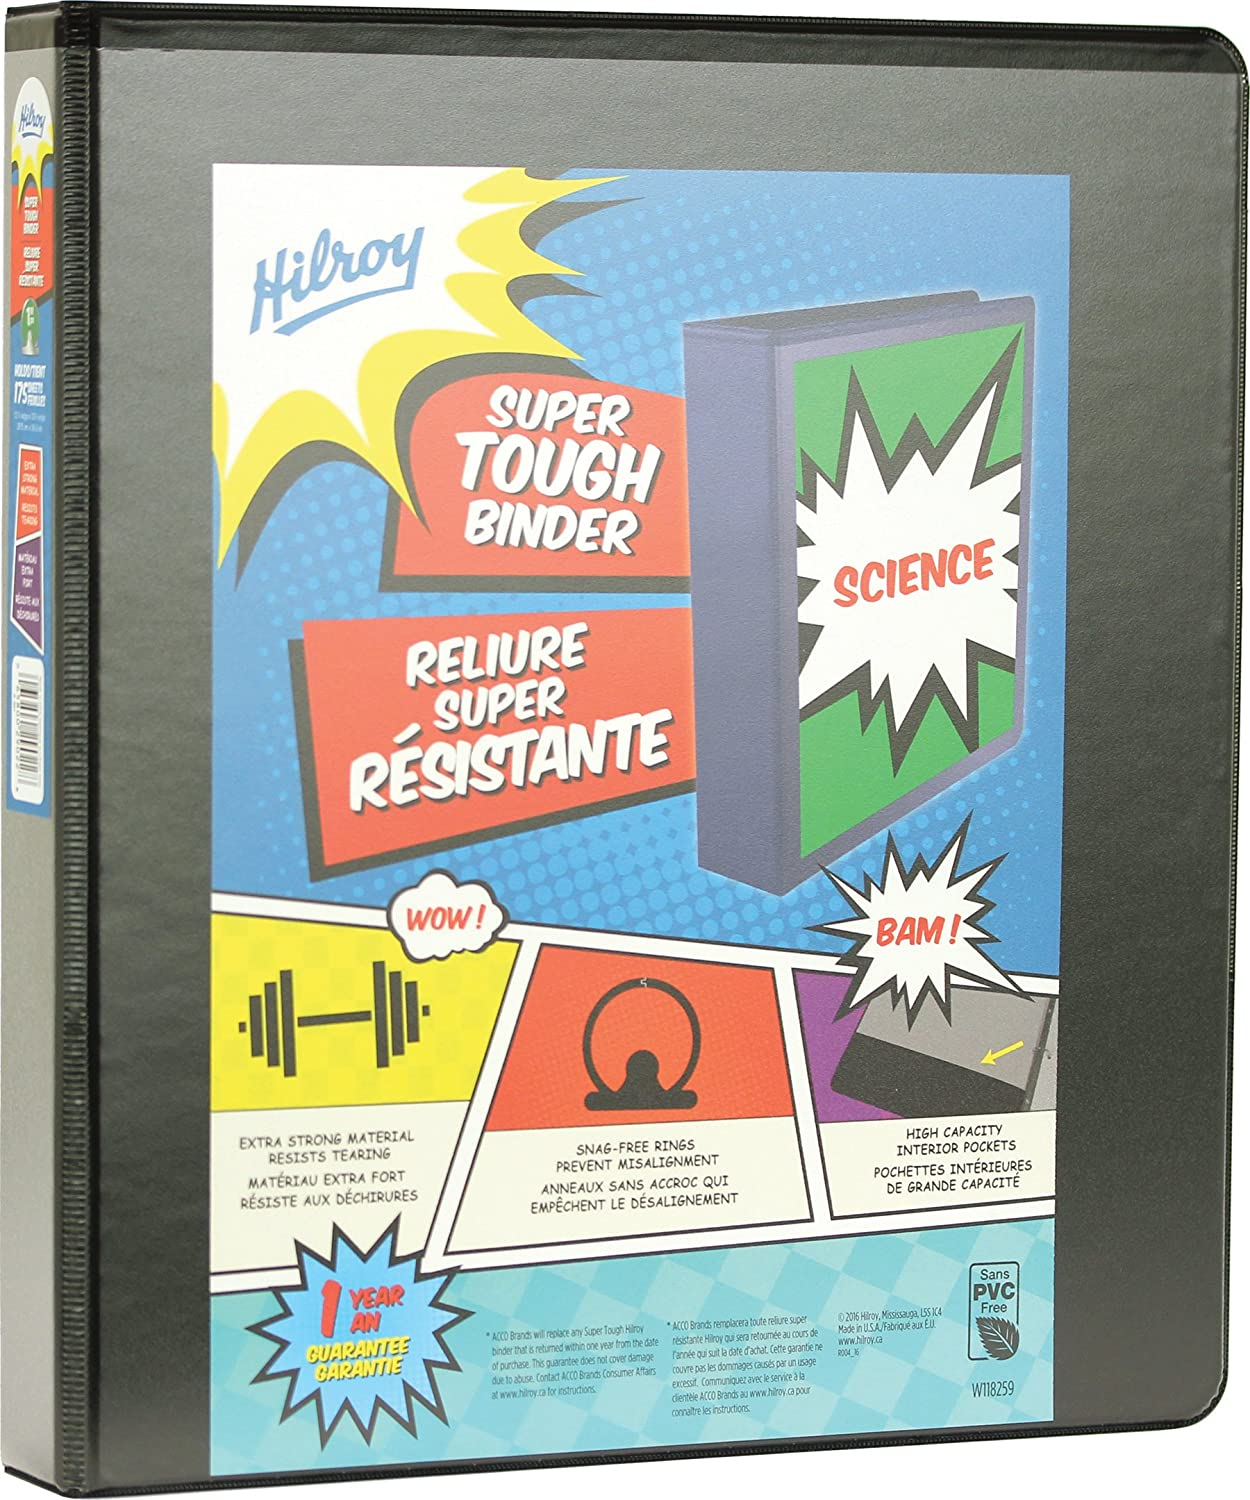 Hilroy Super Tough 2 Inch Binder, Size 2-9/10 x 11-1/5 x 11-7/10 Inches, Black (89541)